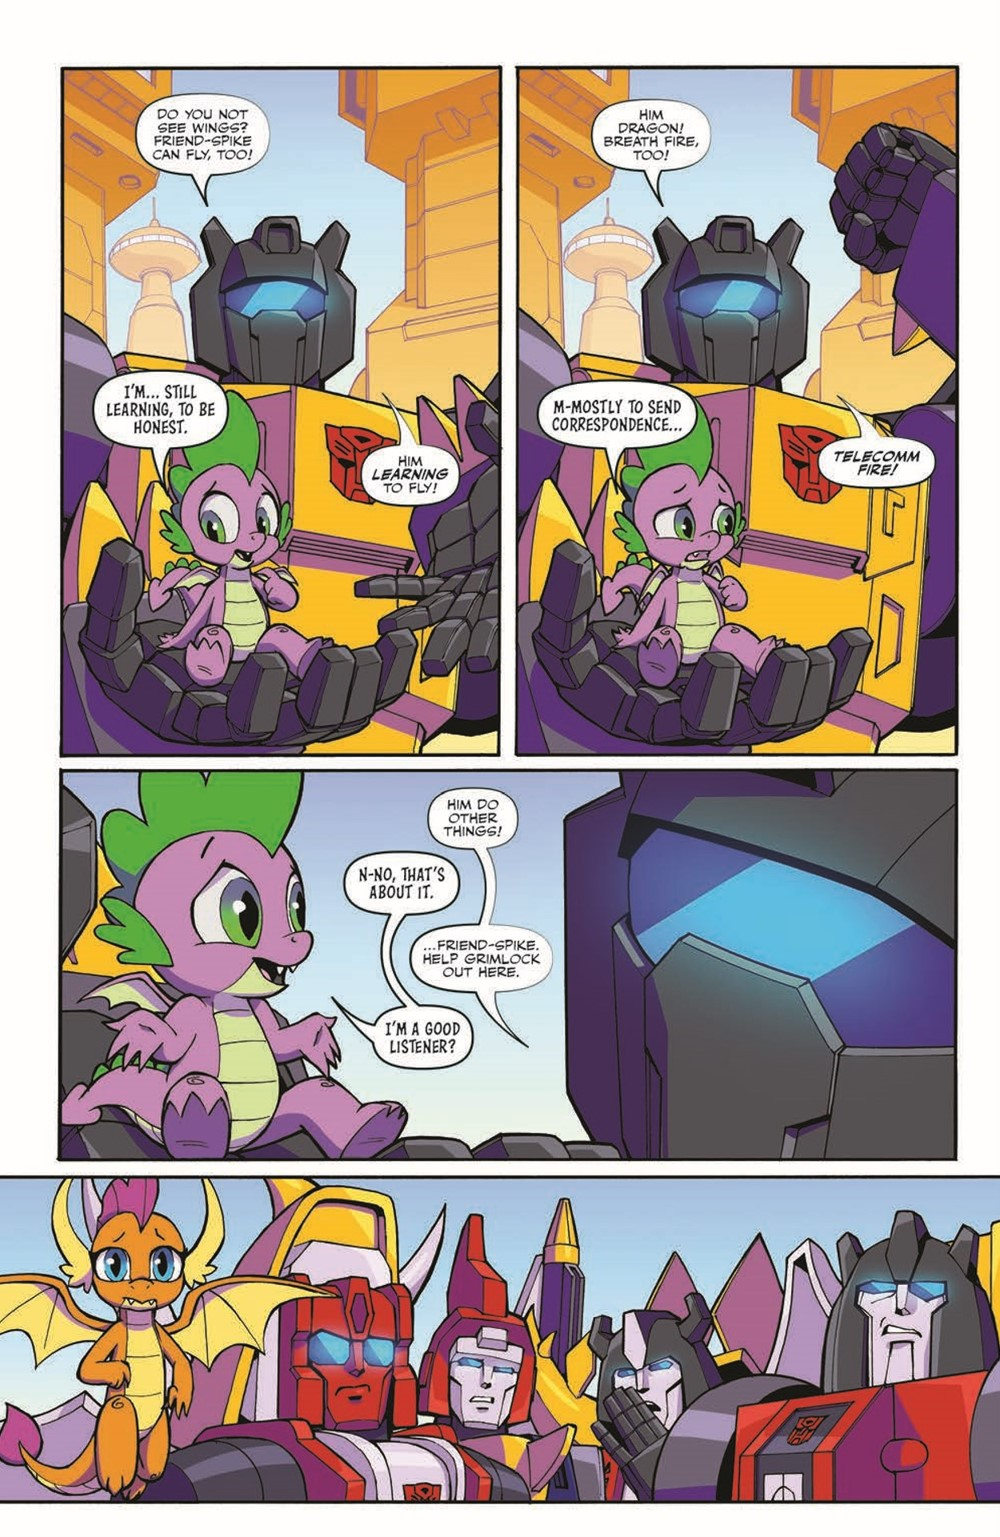 TFMLP2-04-pr-5 ComicList Previews: MY LITTLE PONY TRANSFORMERS II #4 (OF 4)